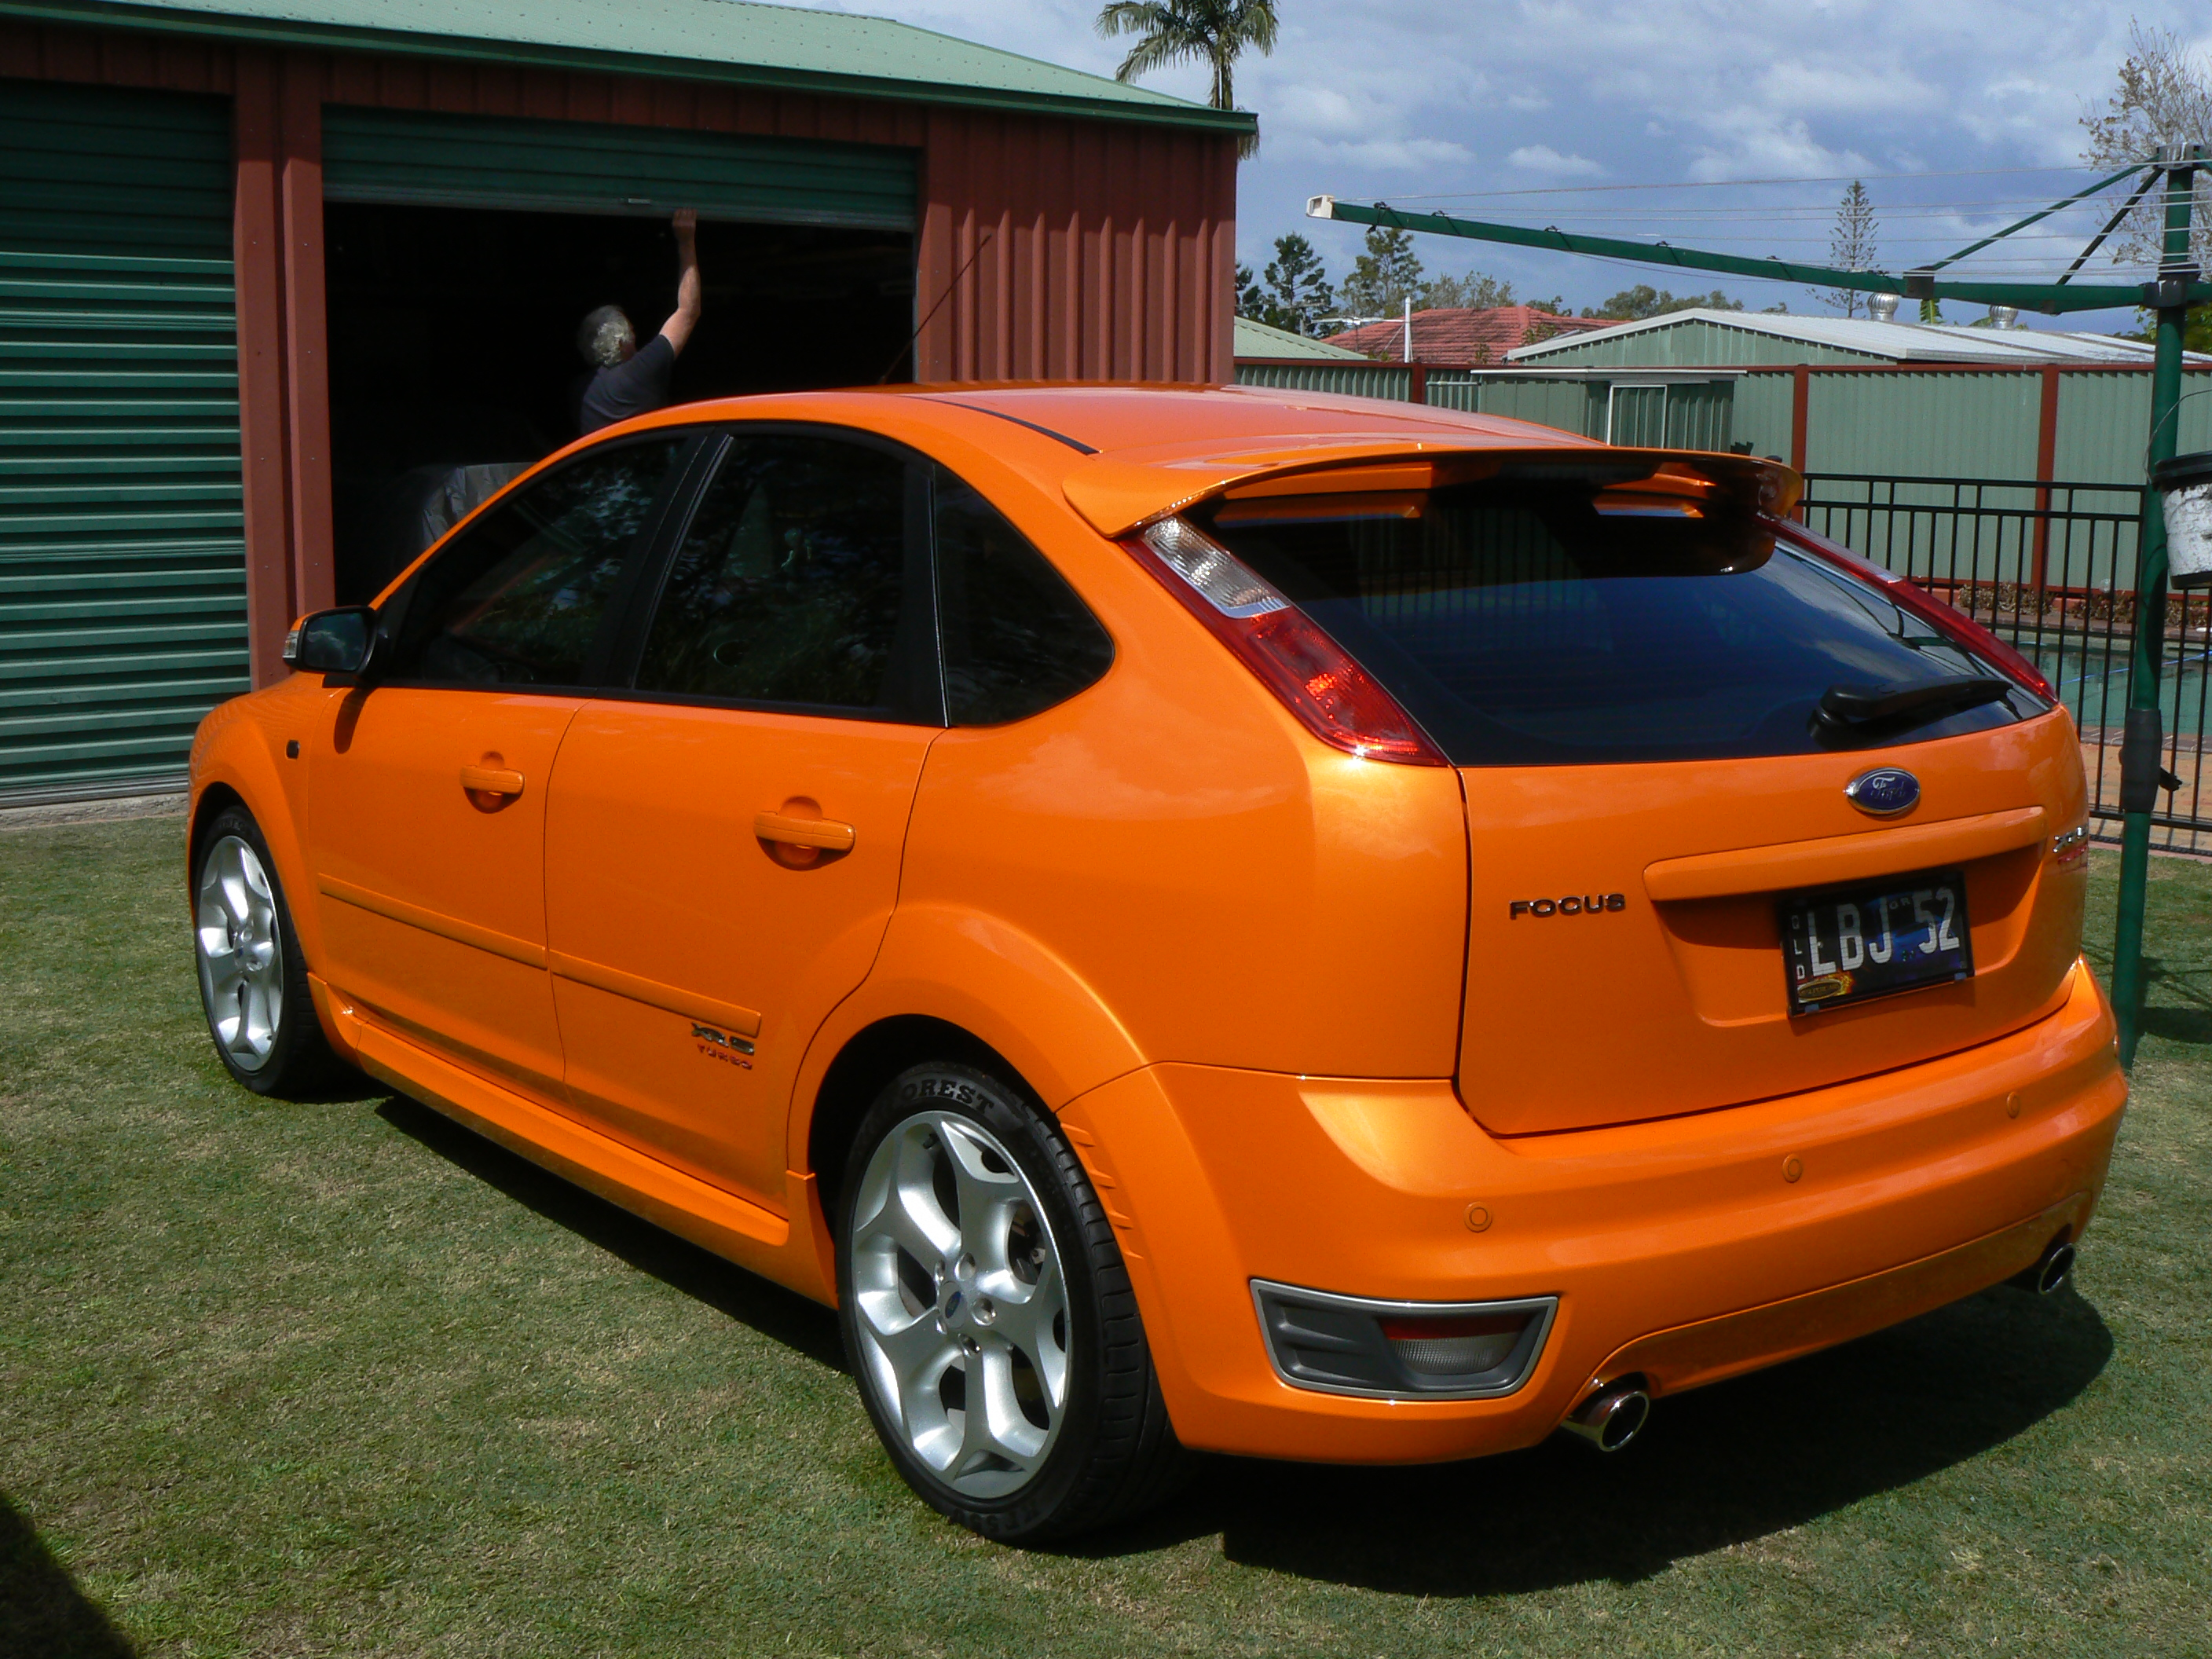 2007 ford focus xr5 turbo lt car sales qld brisbane south 2771429. Black Bedroom Furniture Sets. Home Design Ideas